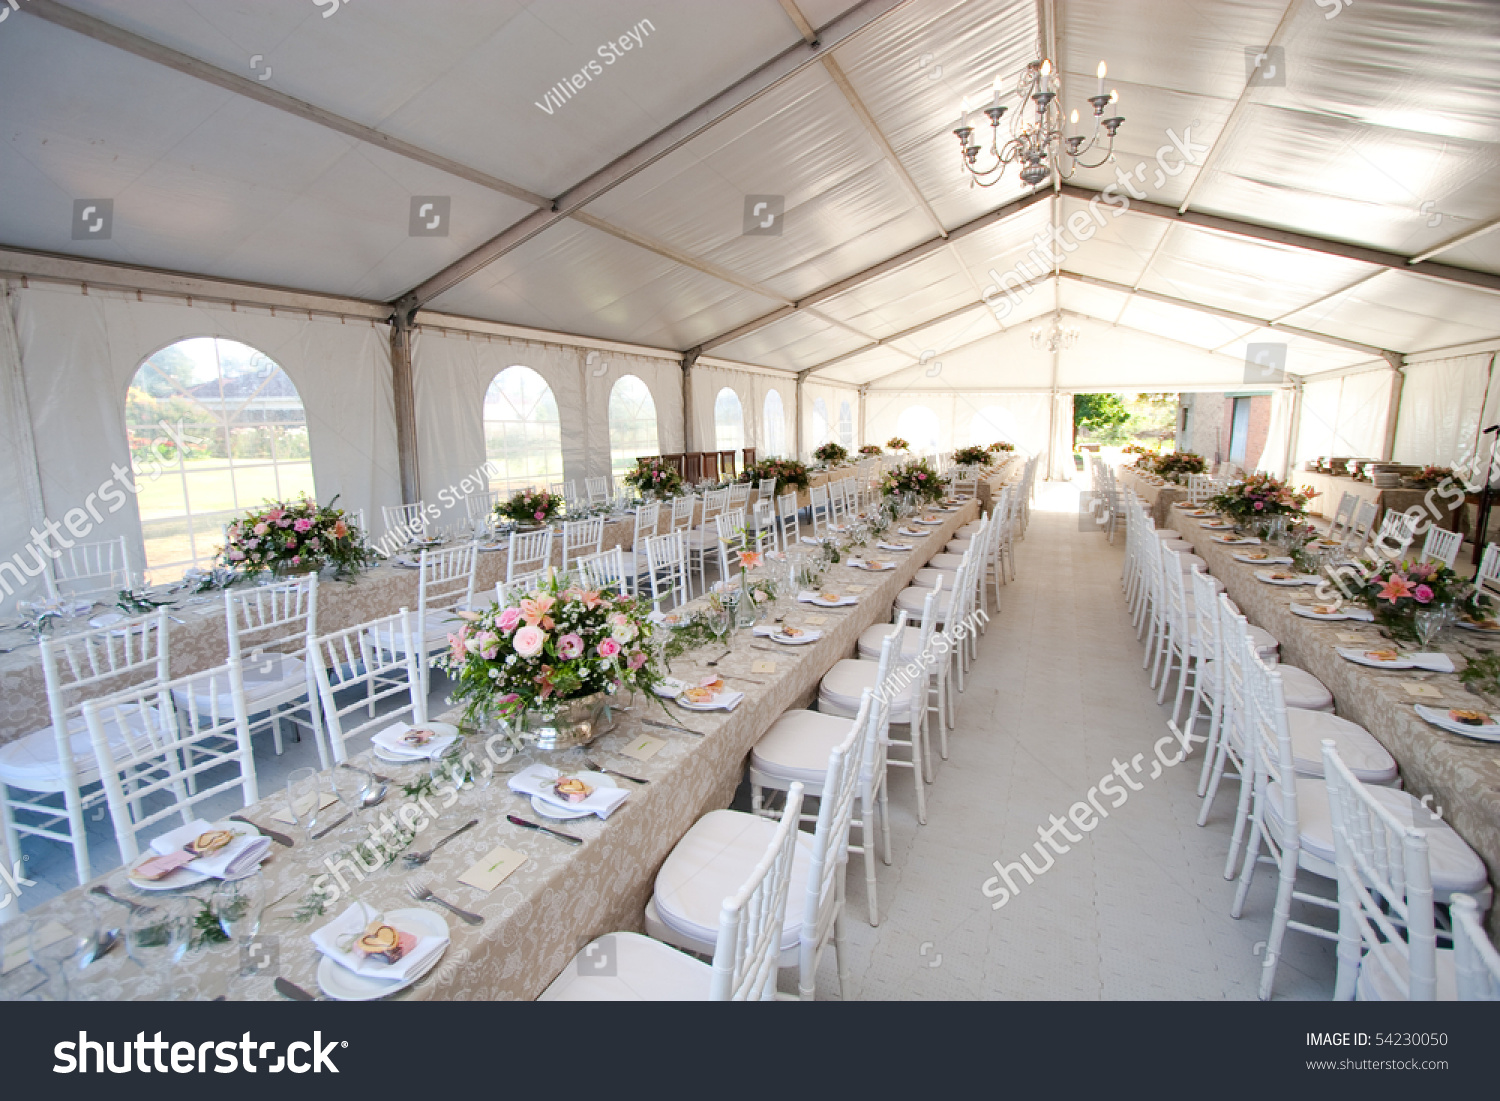 White Chairs At A Wedding Indoor Stock Photo: Inside Massive White Wedding Tent Tables Stock Photo